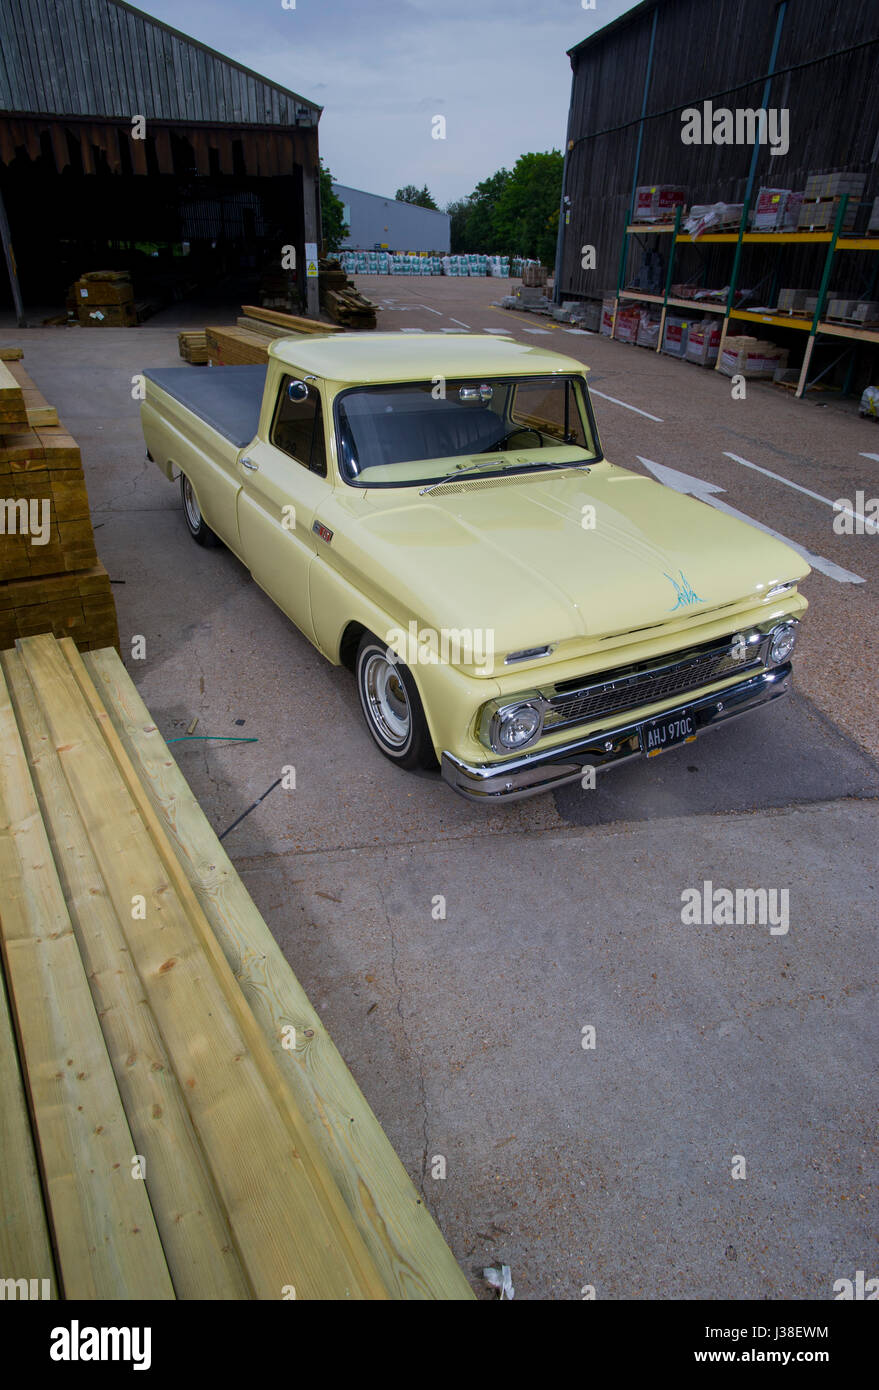 Chevy C10 Stock Photos Images Alamy 1966 Chevrolet Pick Up Classic Truck Image